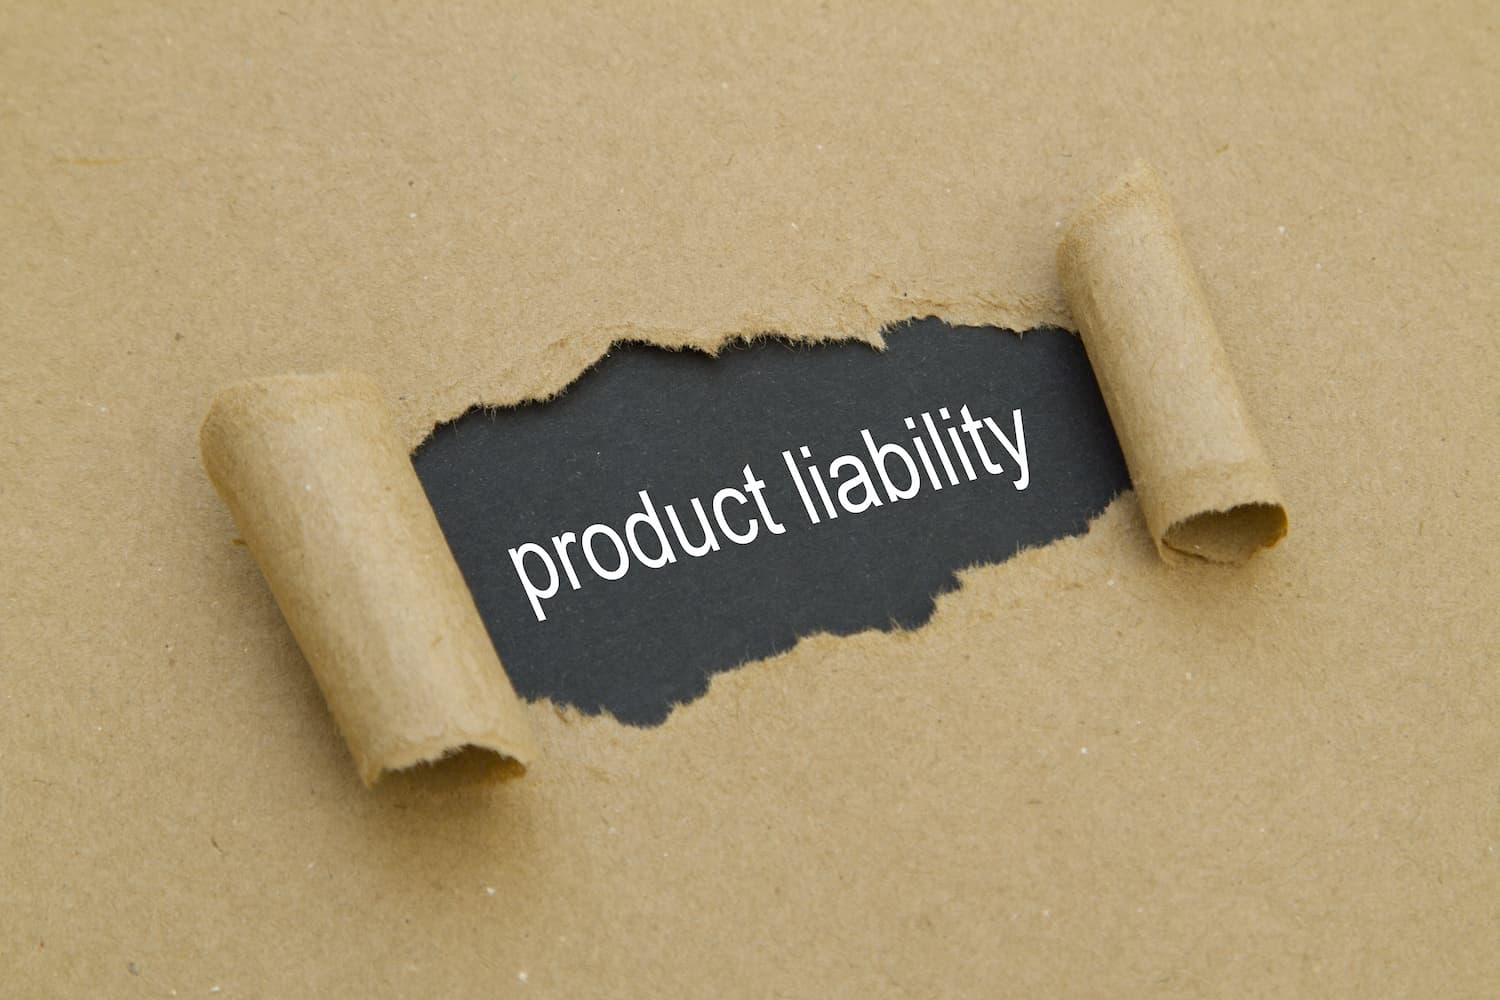 product-liability-img